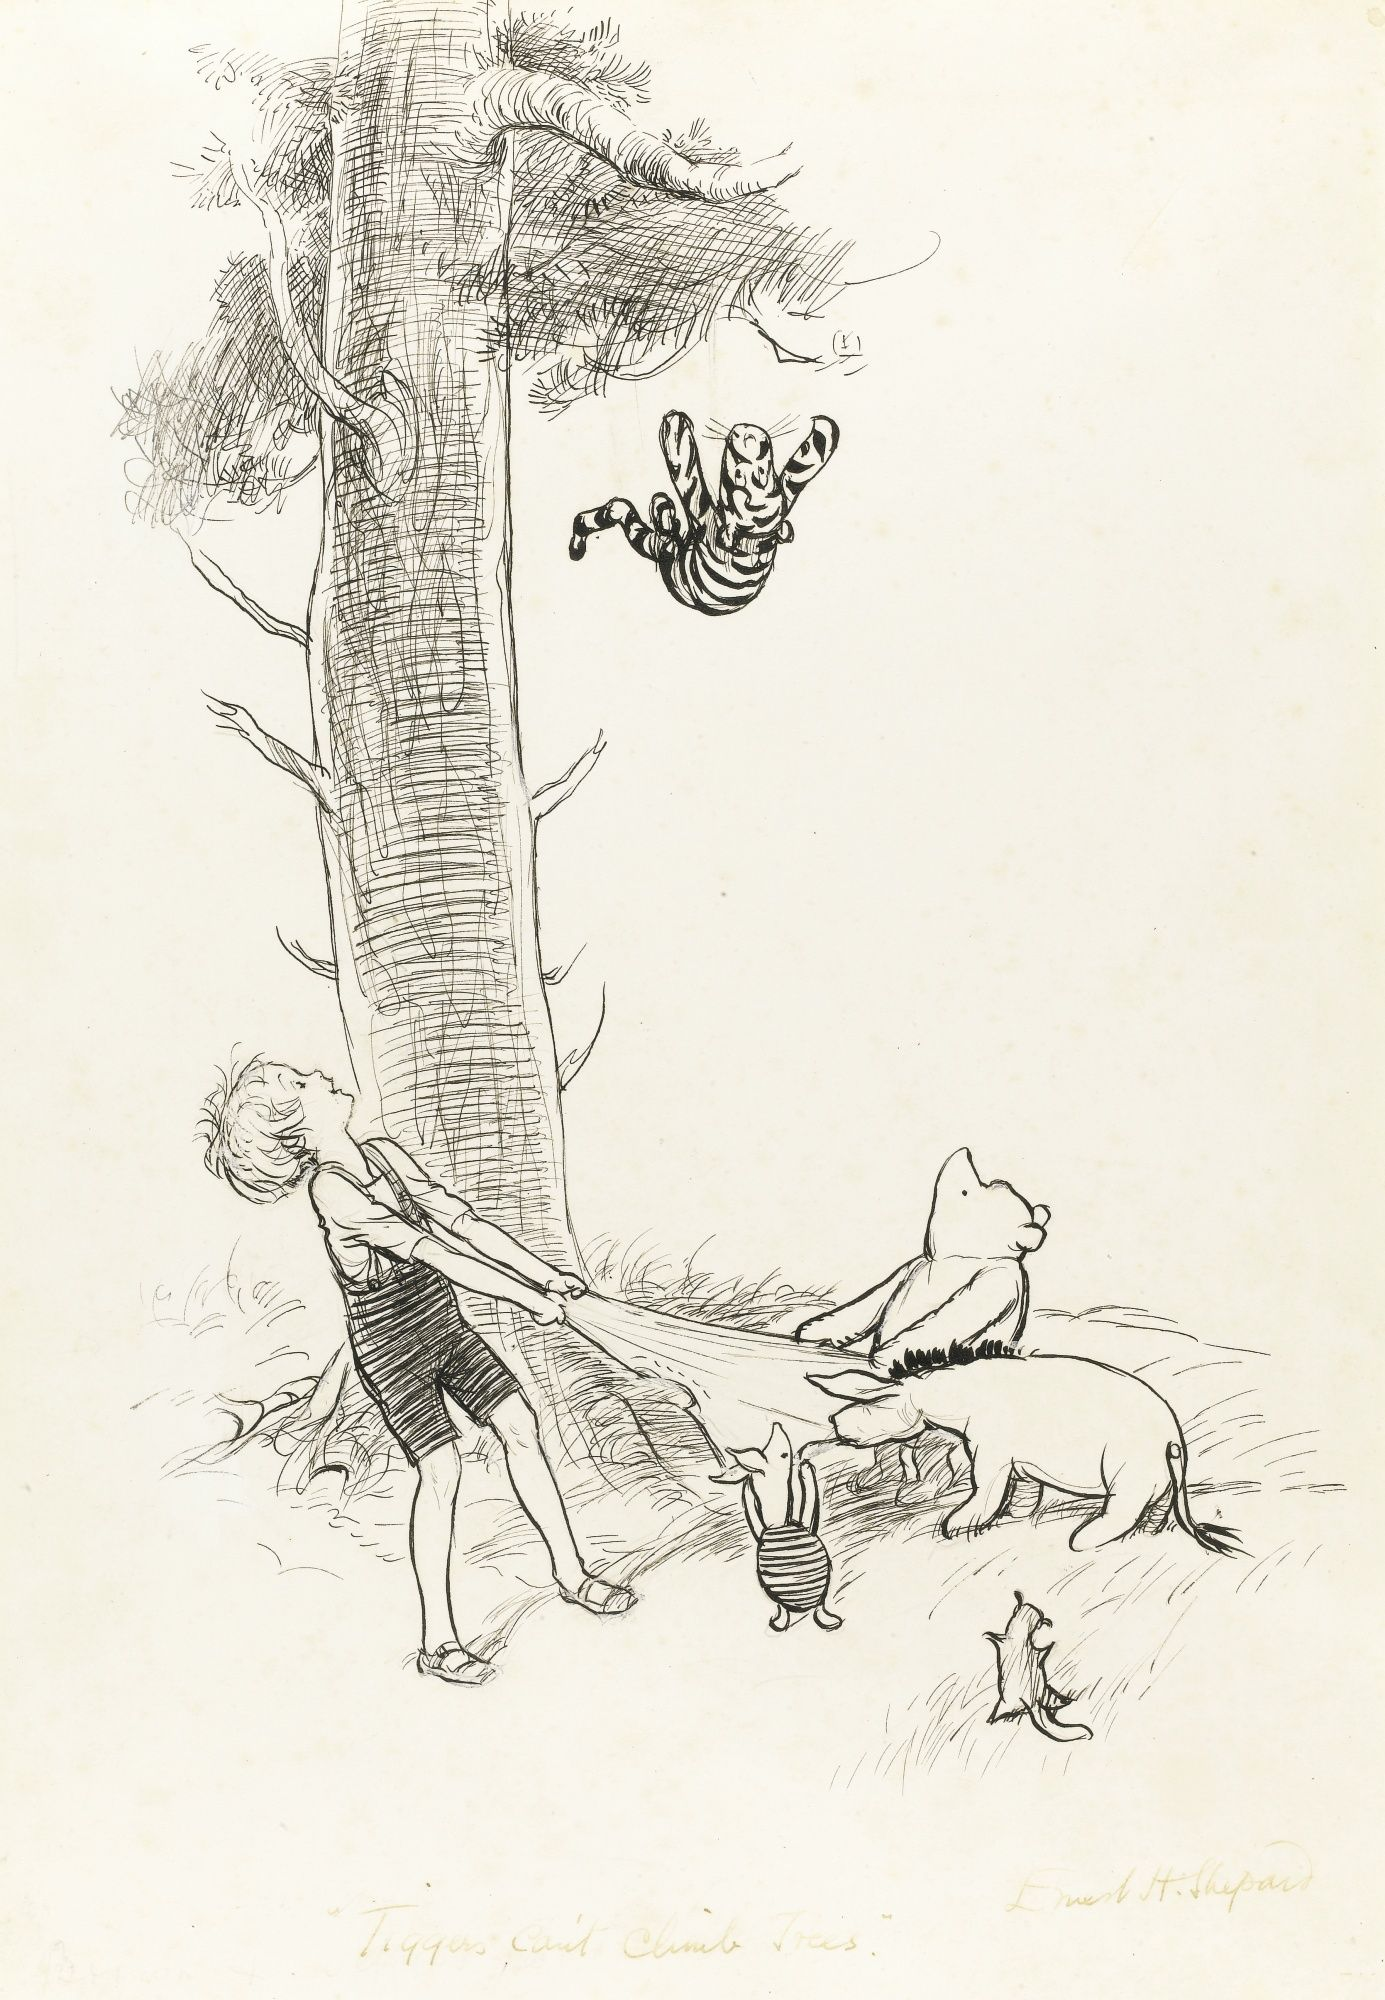 TIGGERS CANT CLIMB TREES 296 By 200mm Ink Drawing Sothebys 2012